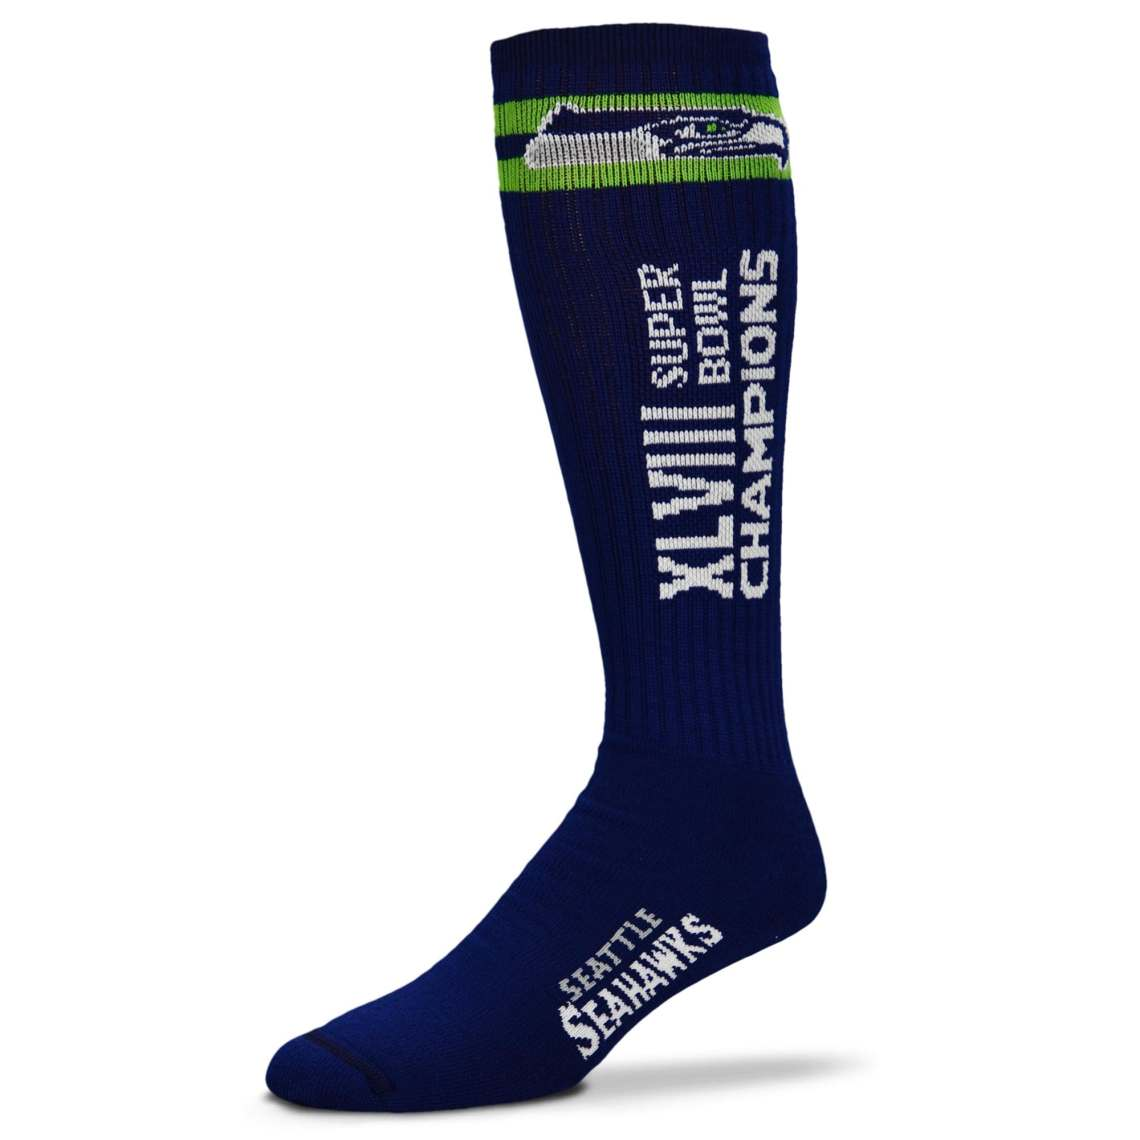 Seattle Seahawks Super Bowl XLVIII Champions Tube Socks College Navy